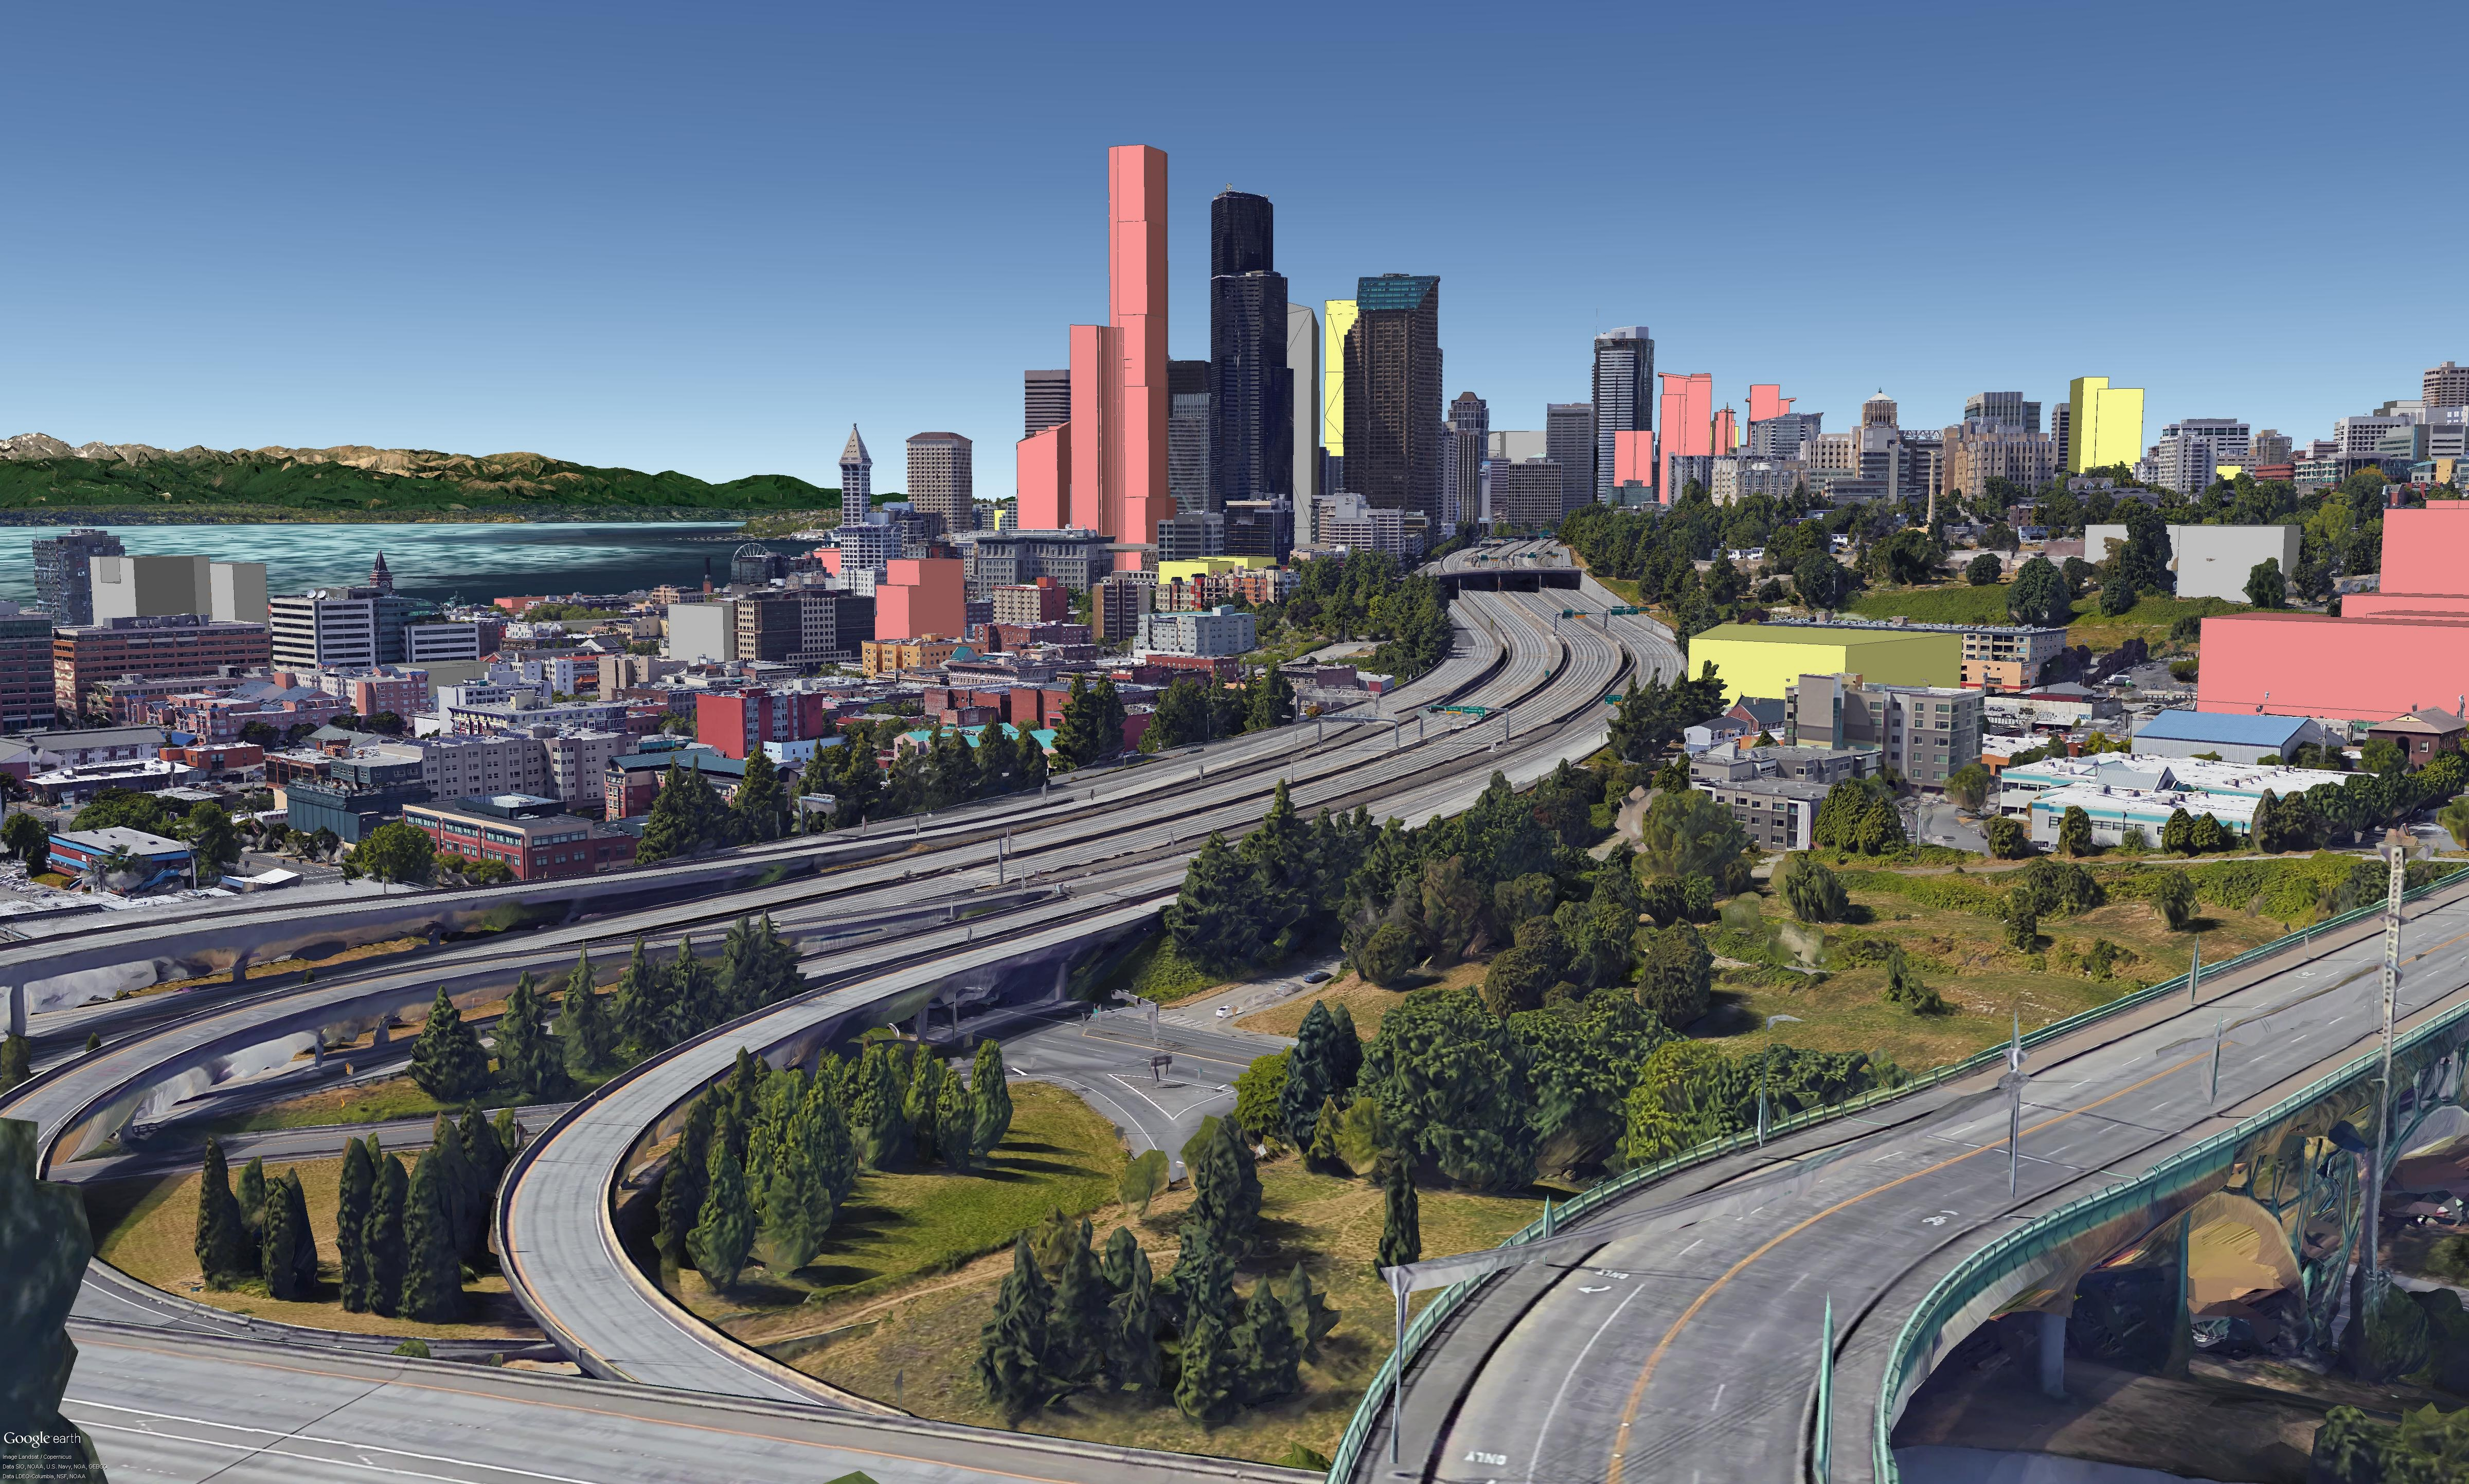 Photos: Check out the [proposed] future Seattle skyline ...